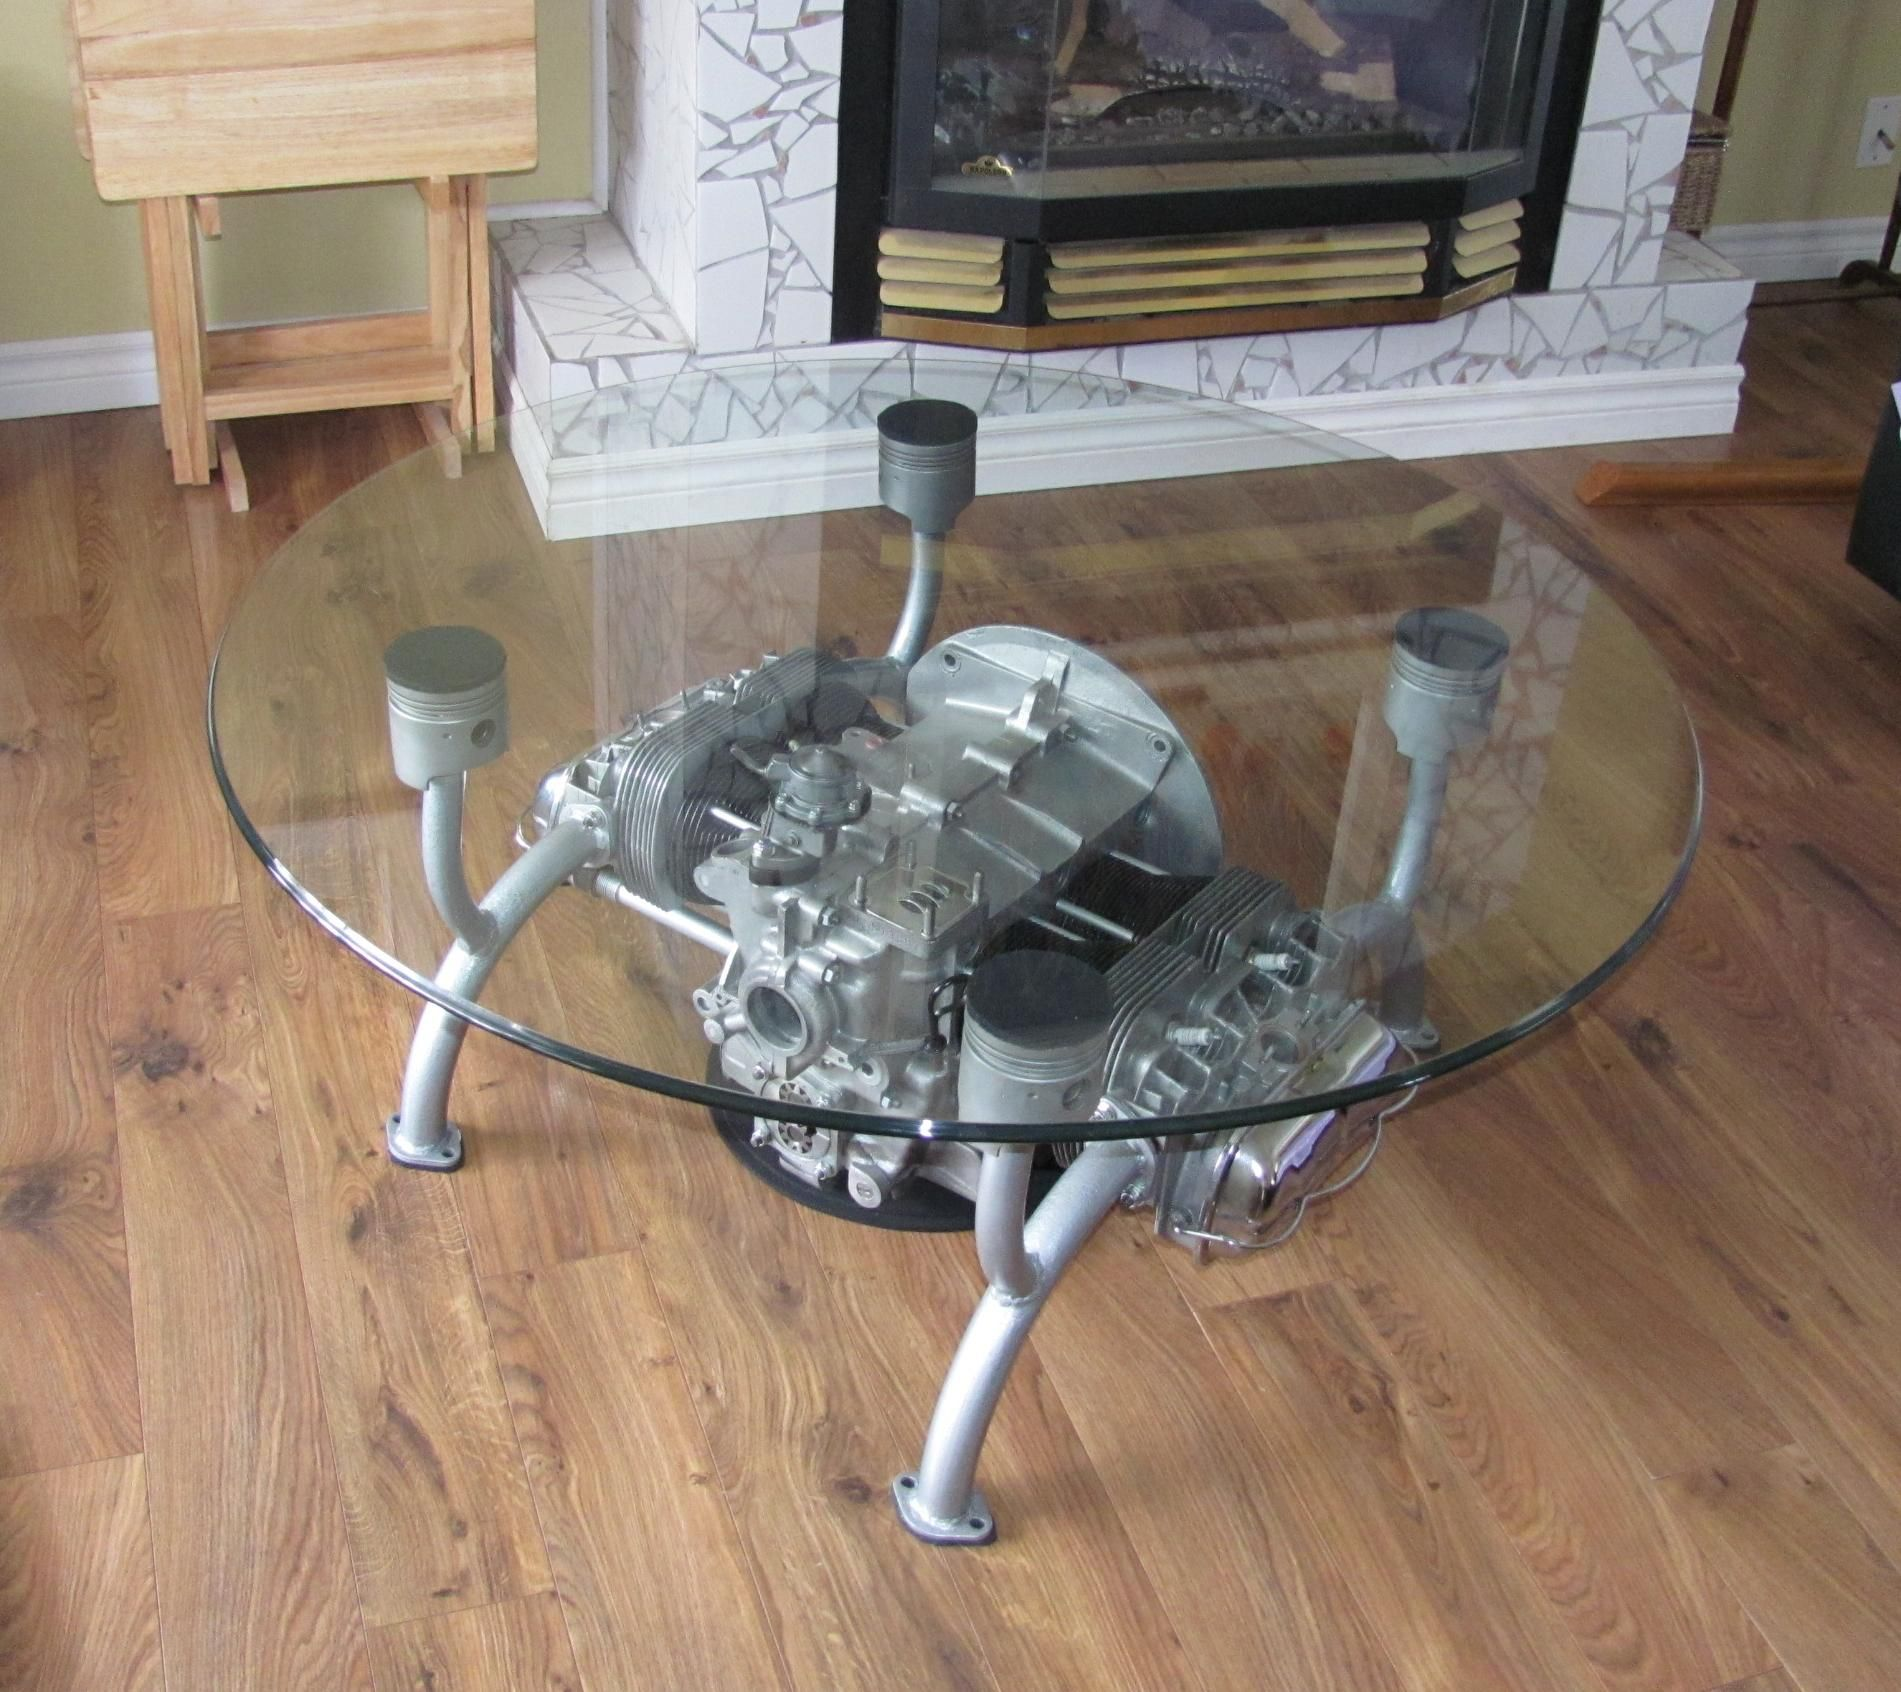 Vw motor table things made out of car motorcycle parts for Engine parts furniture